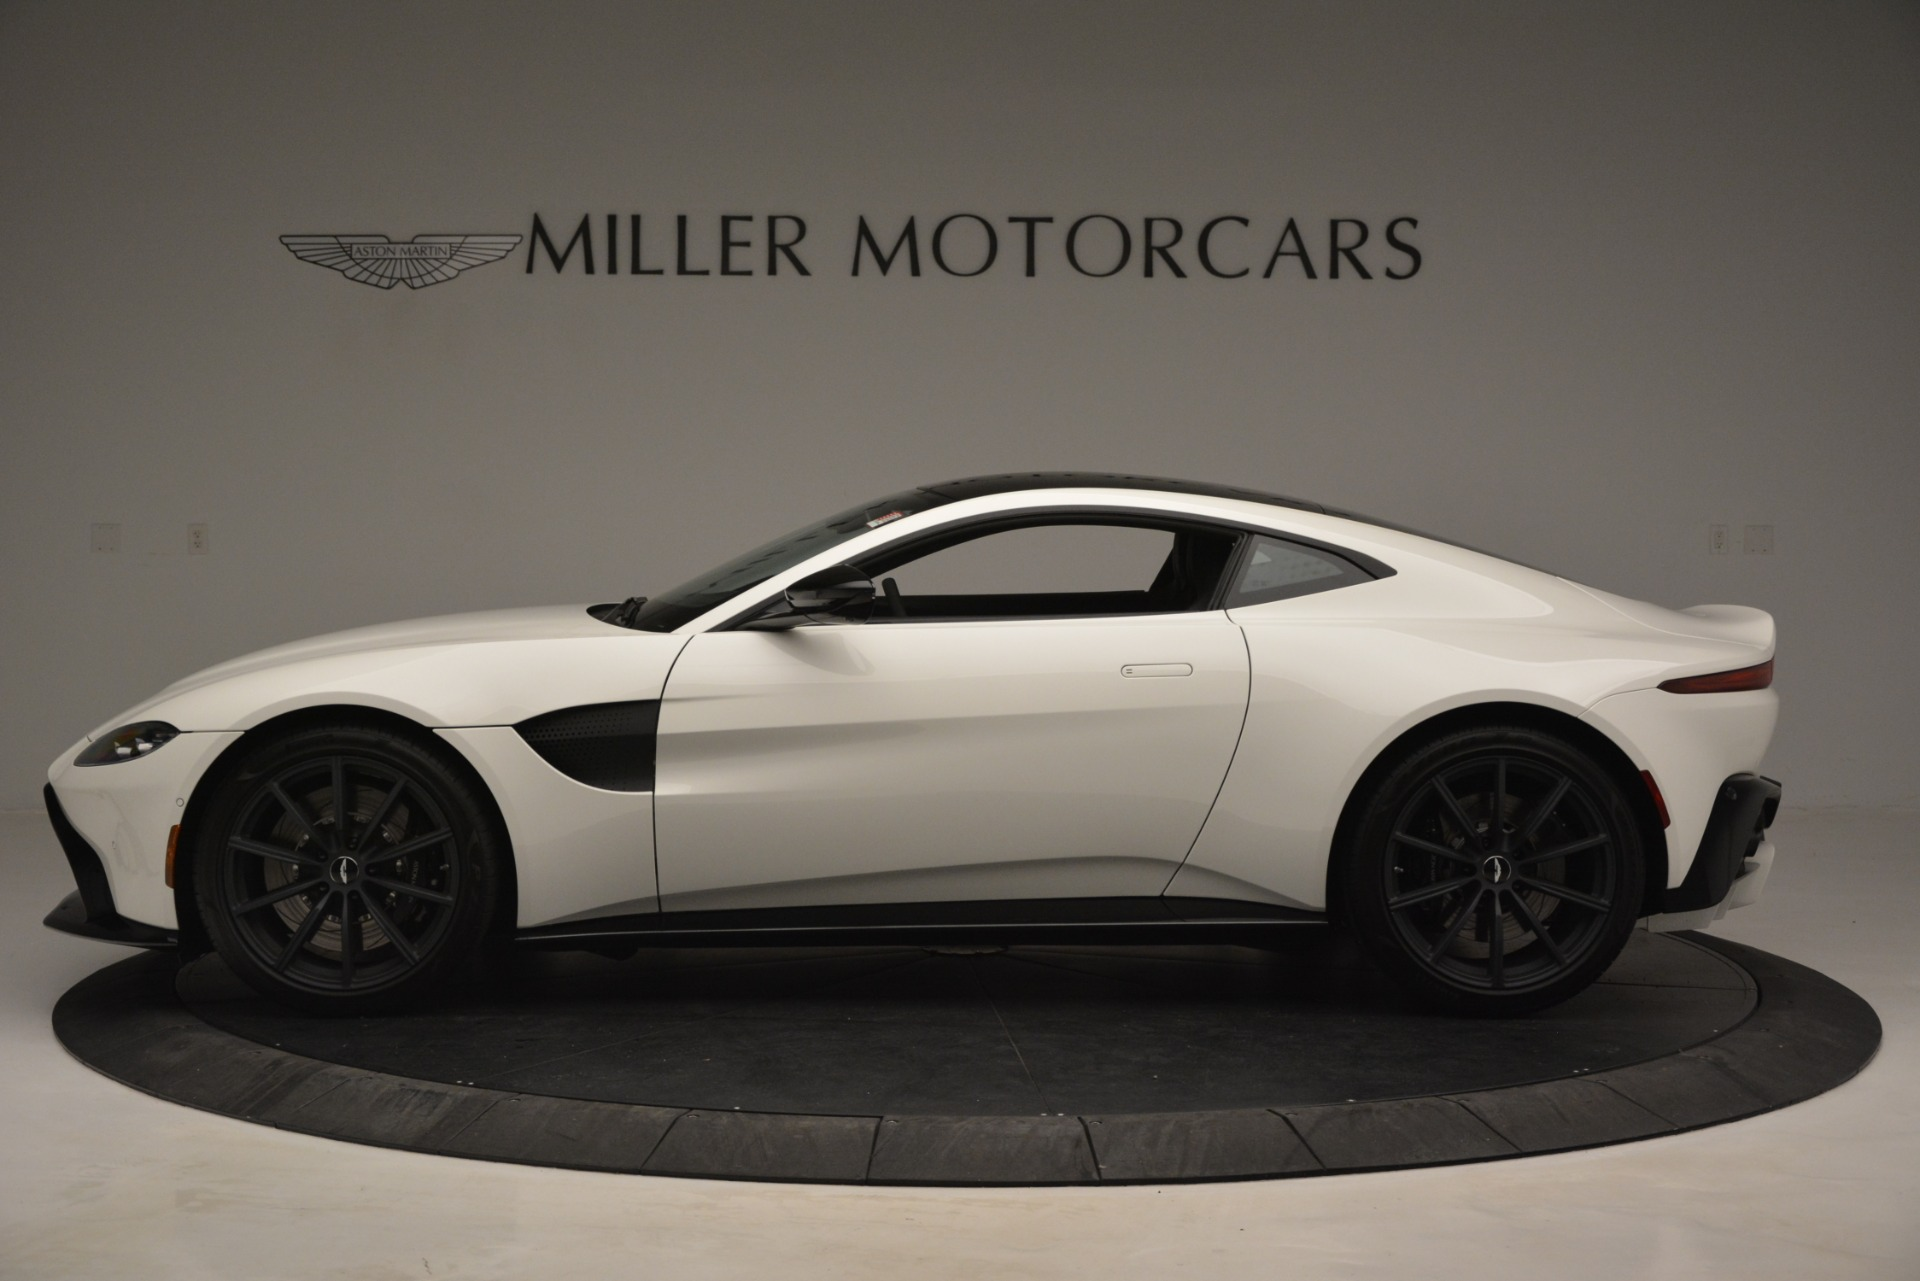 New 2019 Aston Martin Vantage V8 For Sale In Westport, CT 3053_p3